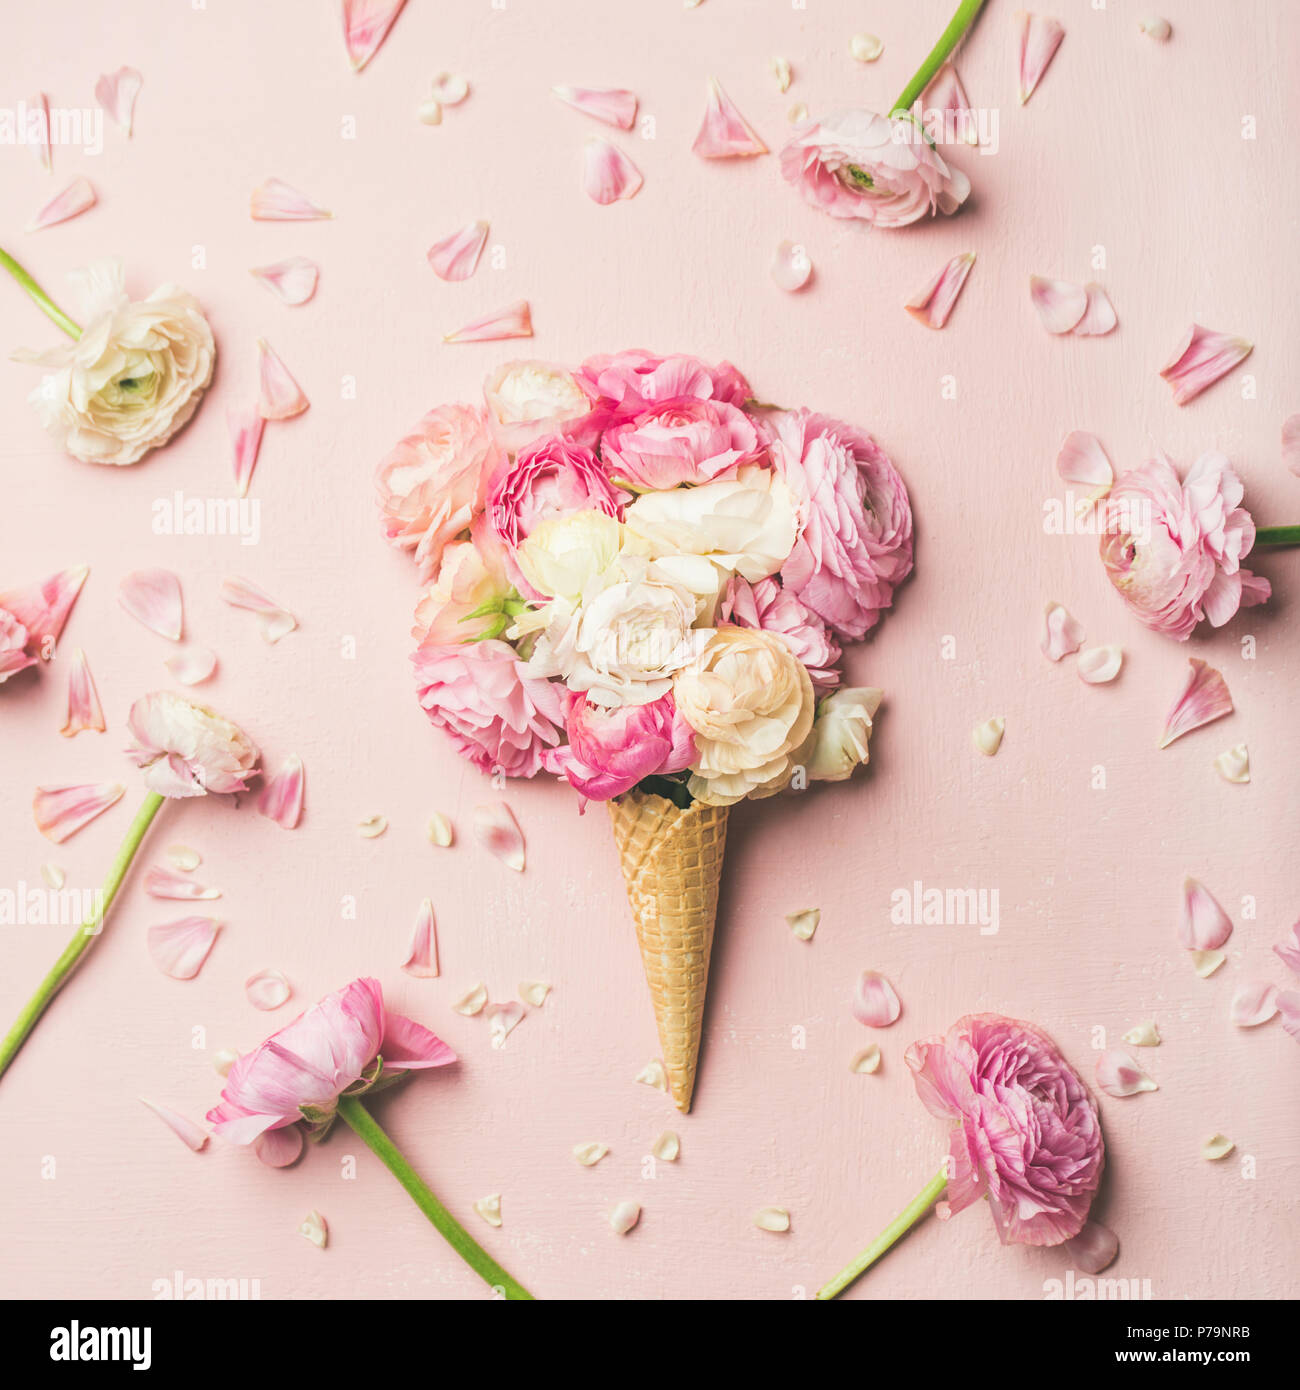 Flat-lay of waffle sweet cone with pink and white buttercup flowers over pastel light pink background, top view, square crop. Spring or summer mood co - Stock Image